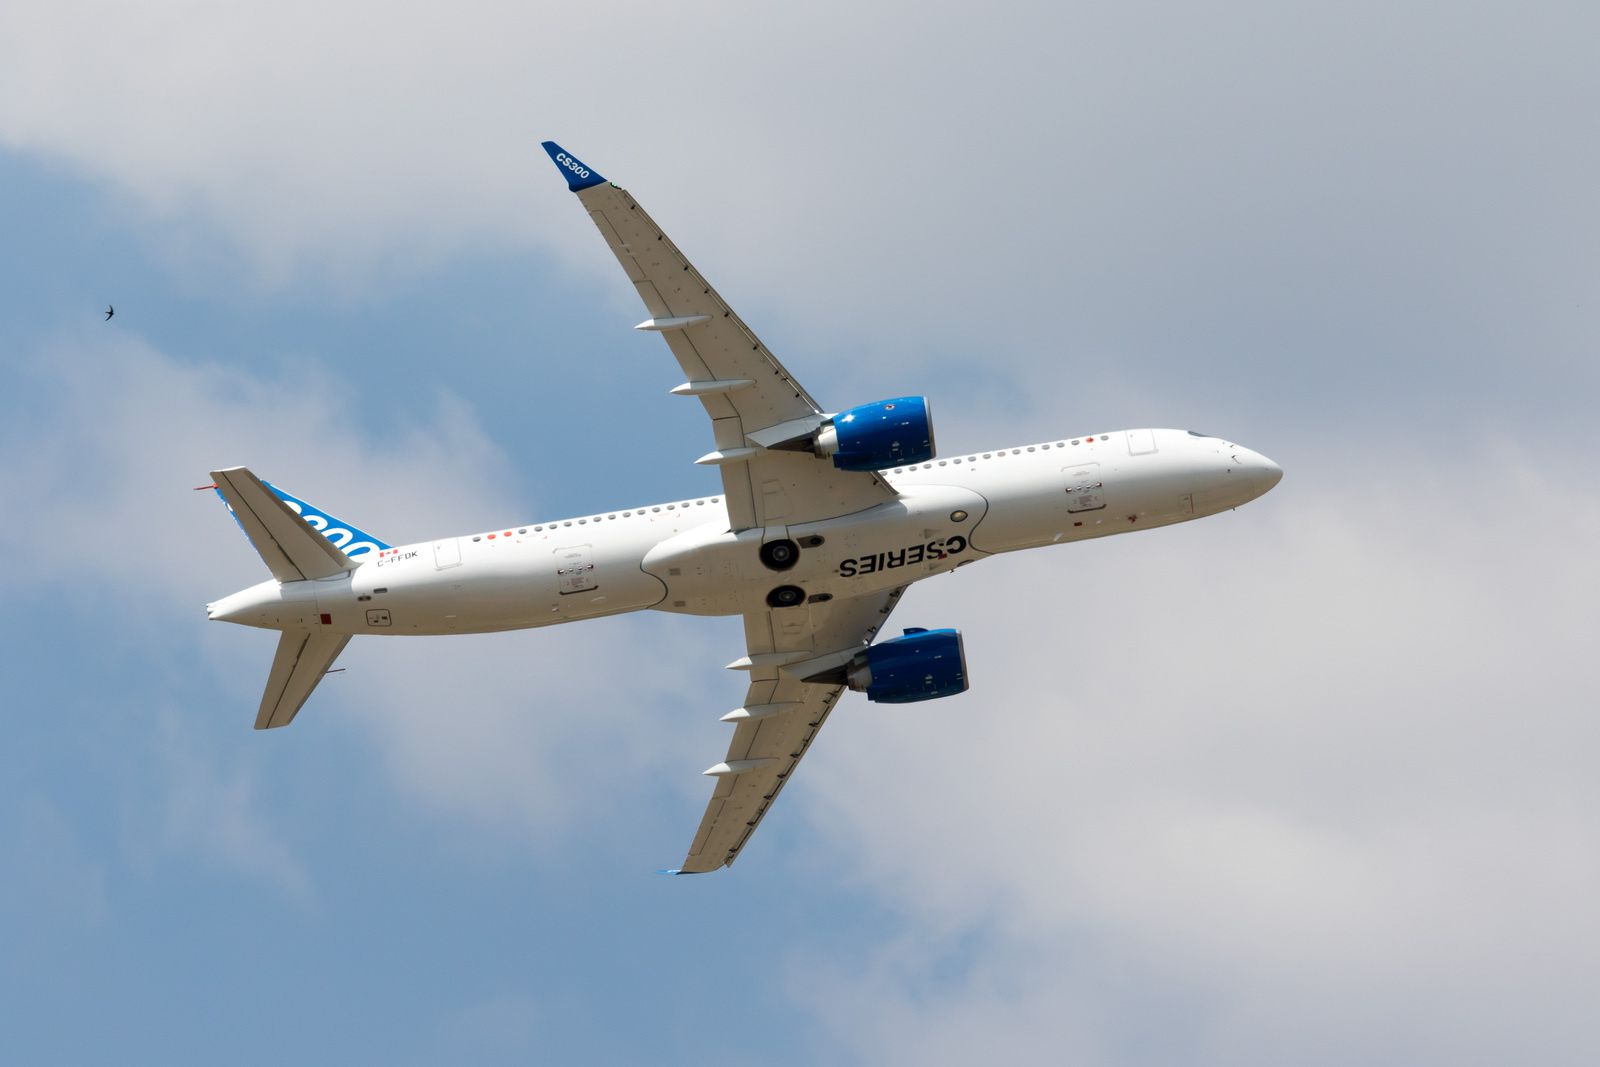 L'avion Bombardier CS300